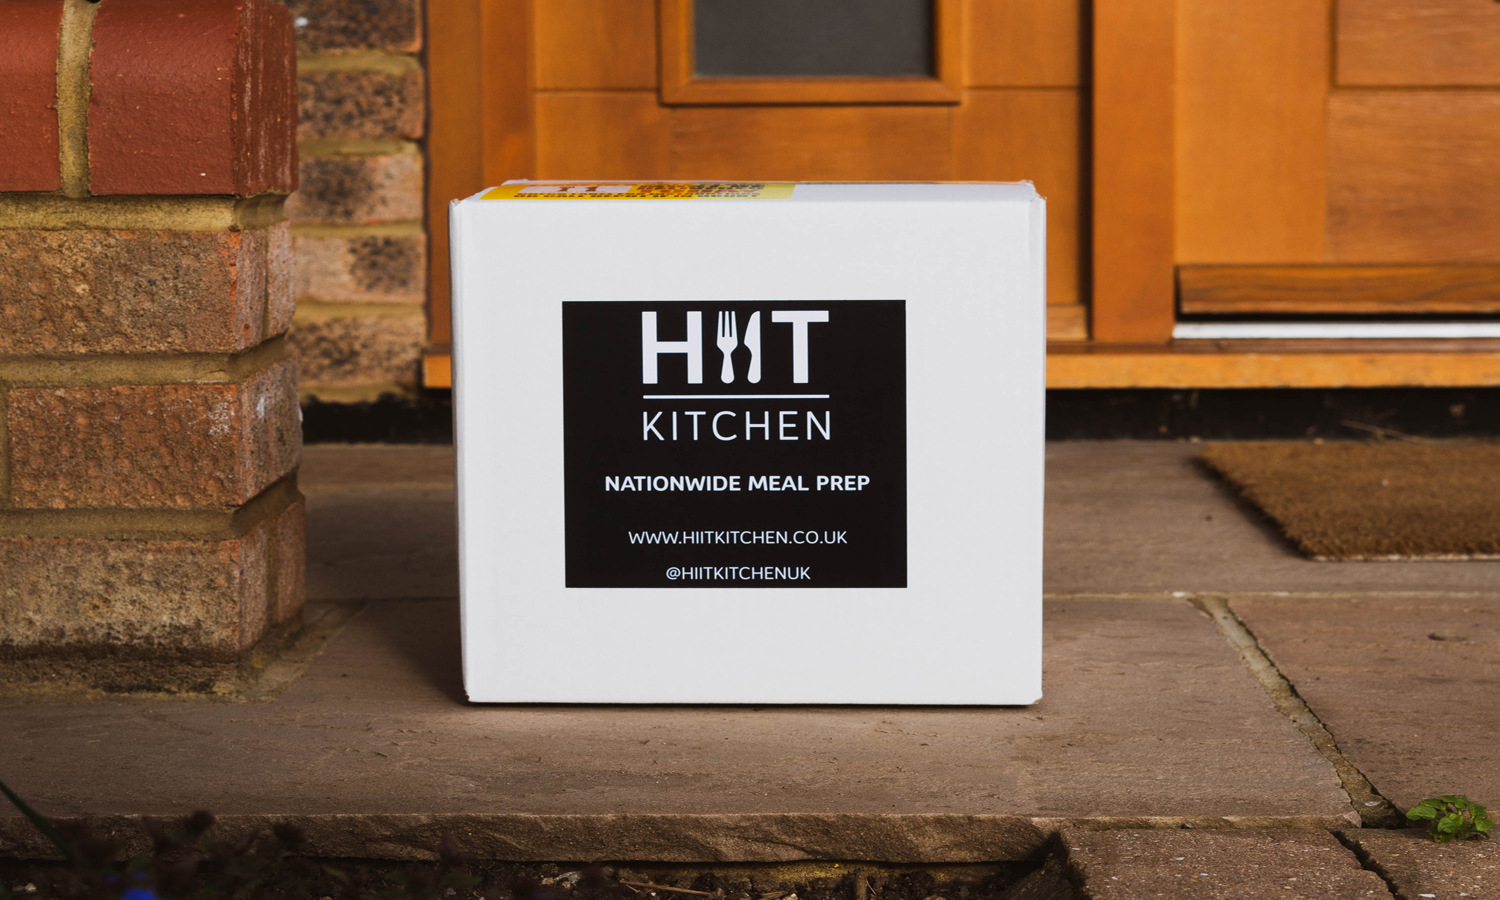 30% off everything at HIIT Kitchen with home delivery 30% off everything at HIIT Kitchen with home delivery